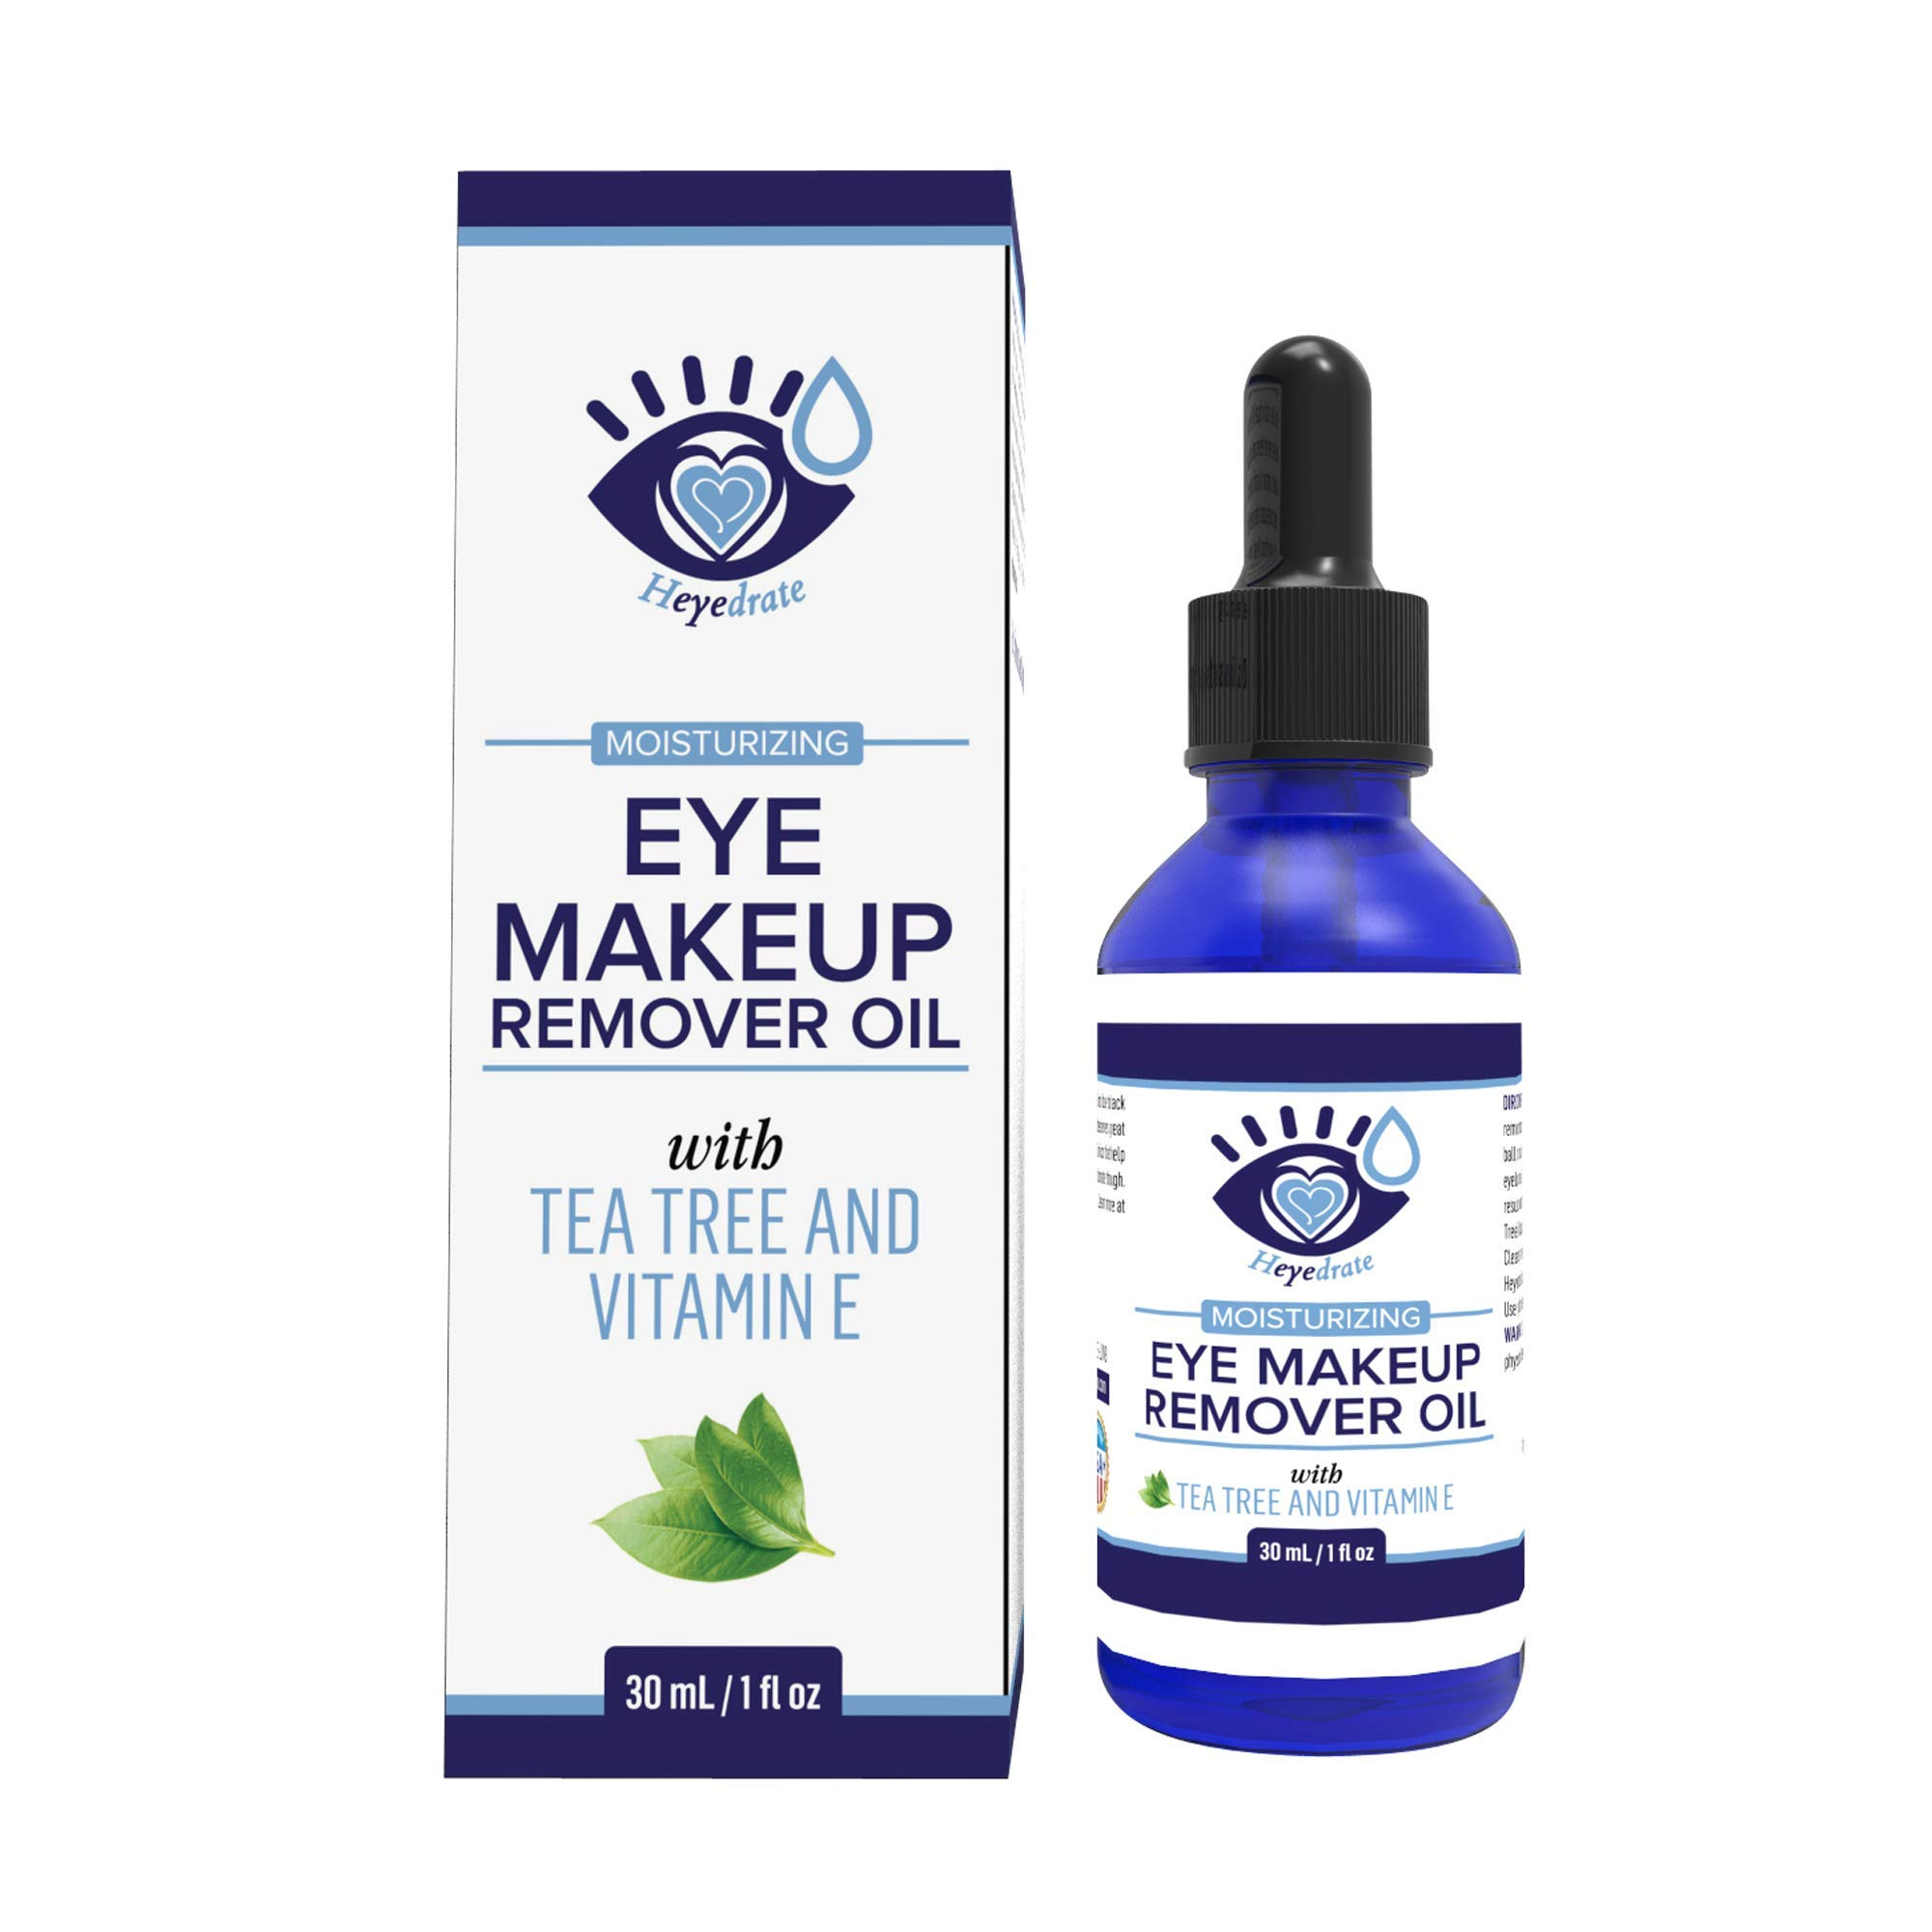 Gentle, Waterproof Eye Makeup Remover - Moisturizing & Organic with Vitamin E and Tea Tree Oil to Support Dry, Itchy Eyelids and Irritated Eyes (1-Pack)